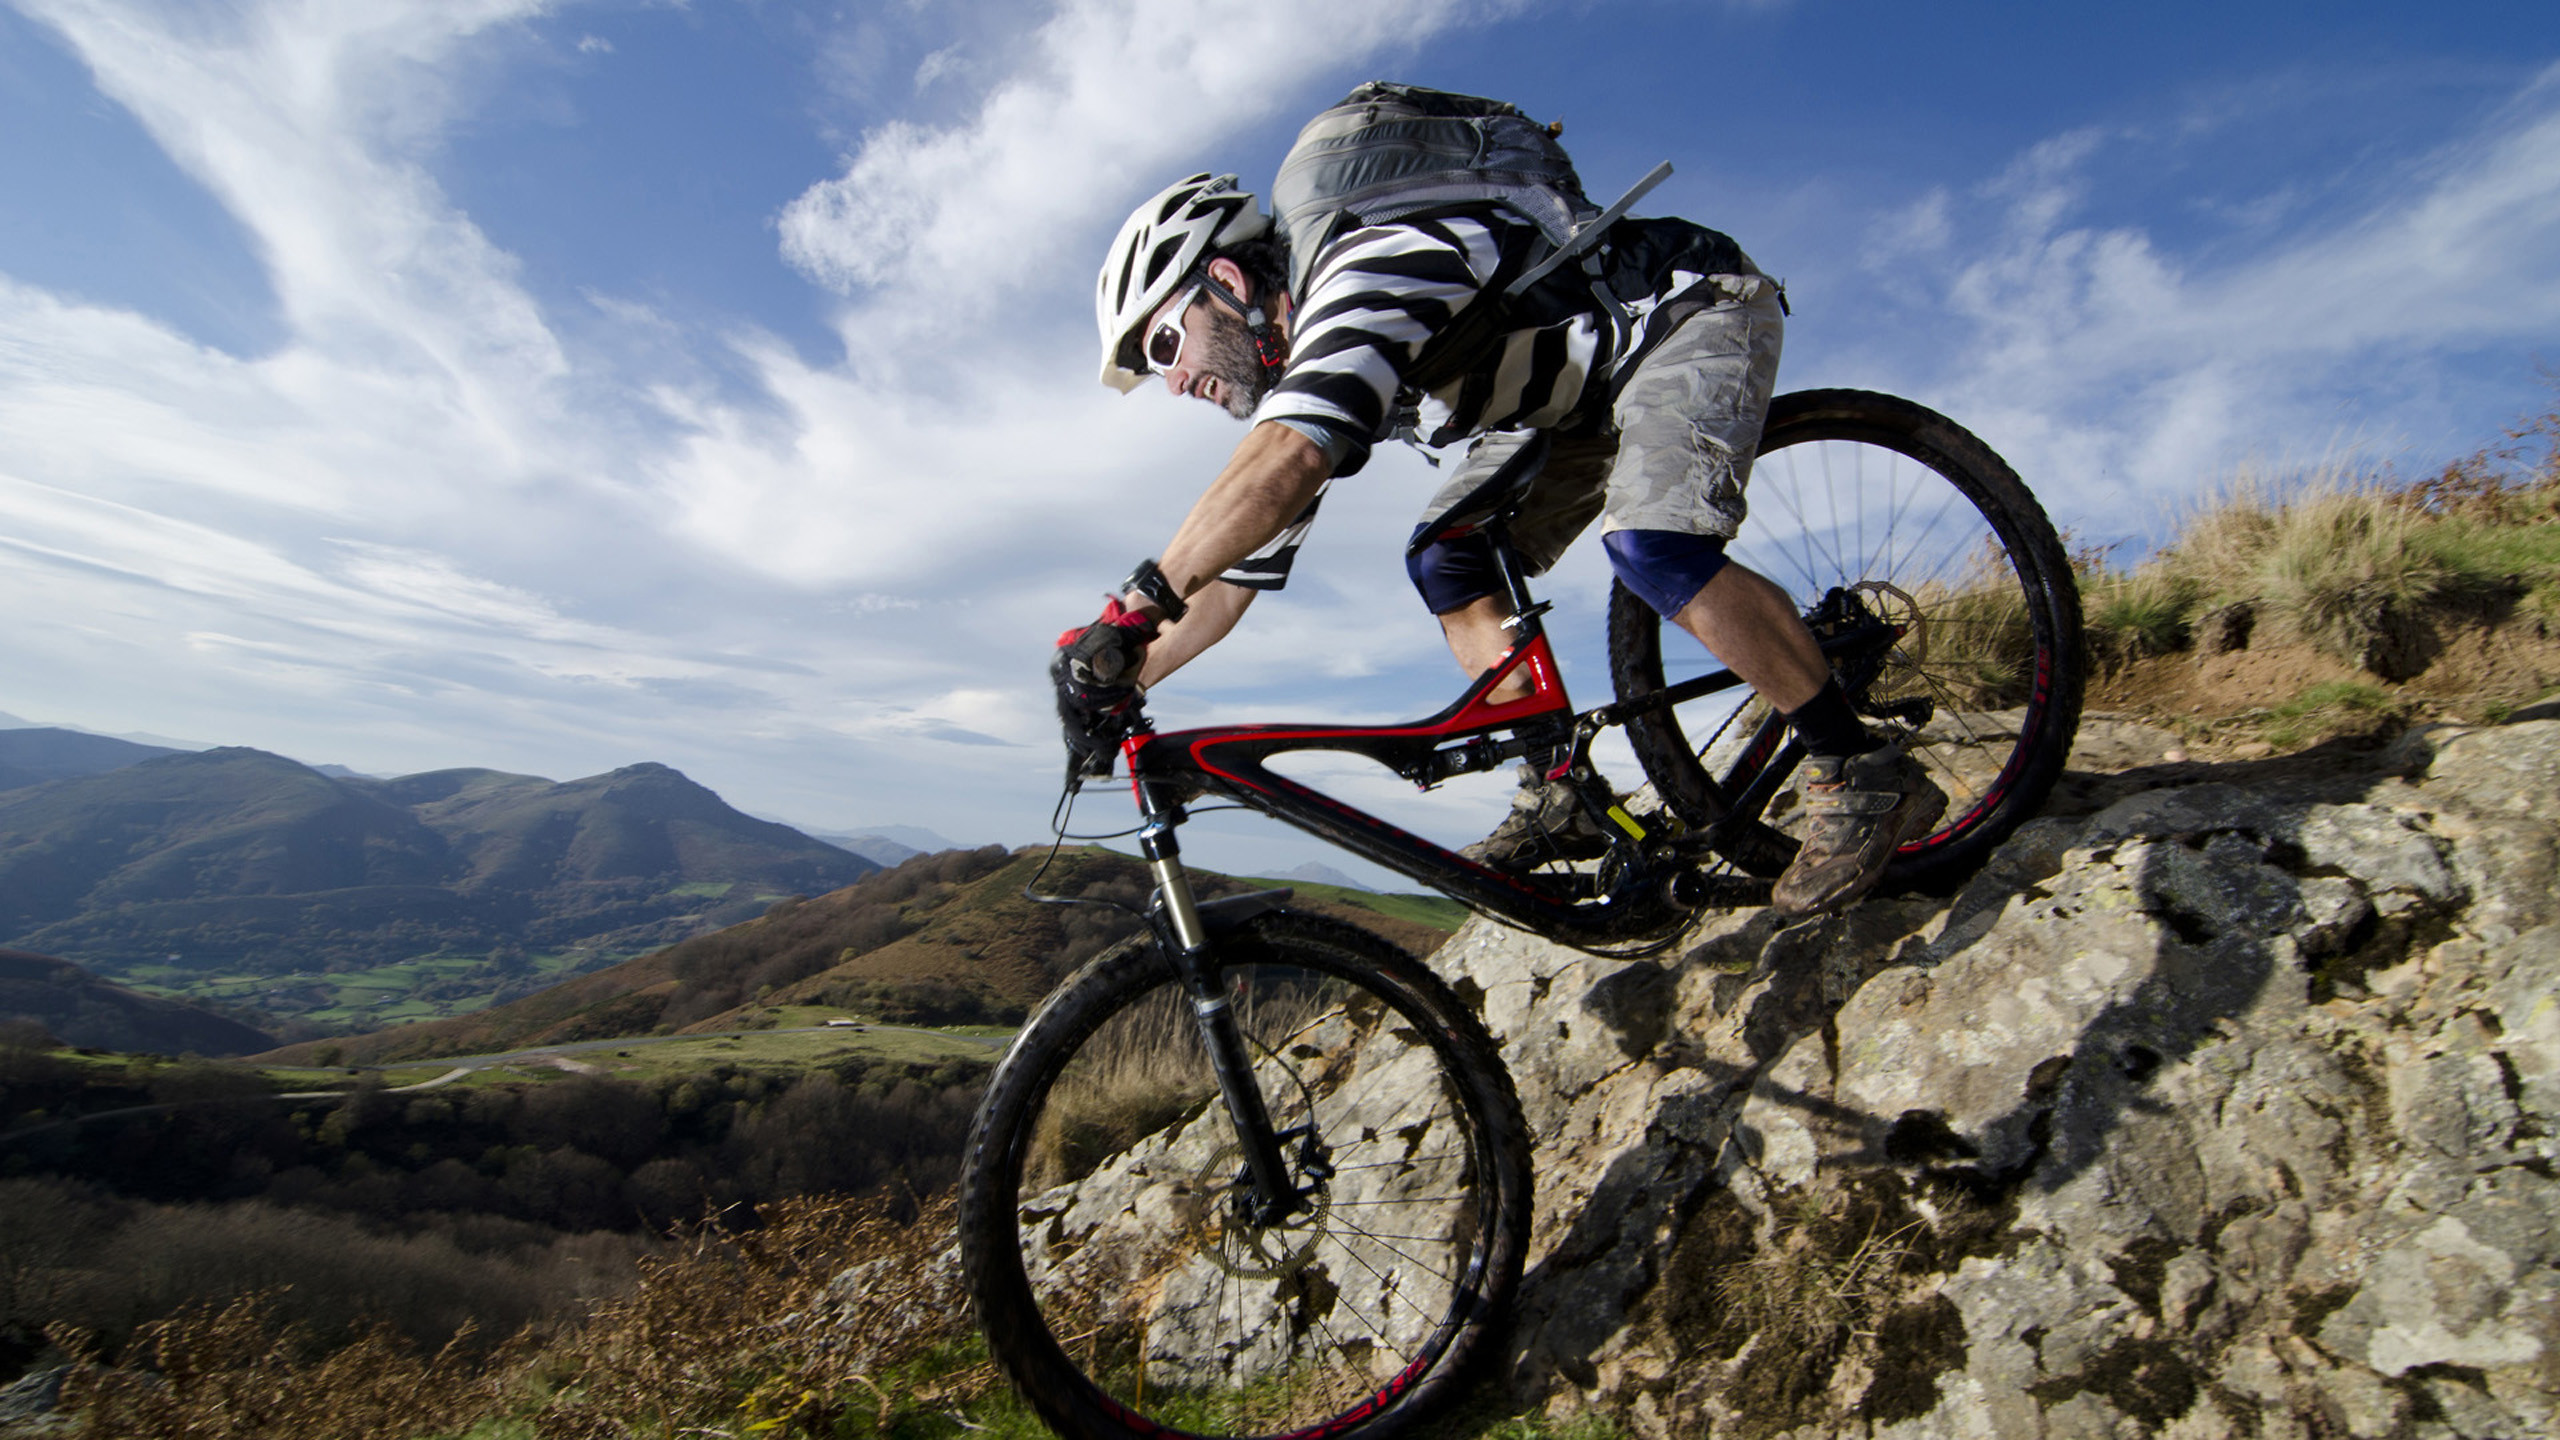 Mountain Bike Wallpapers : Get Free top quality Mountain Bike Wallpapers  for your desktop PC background